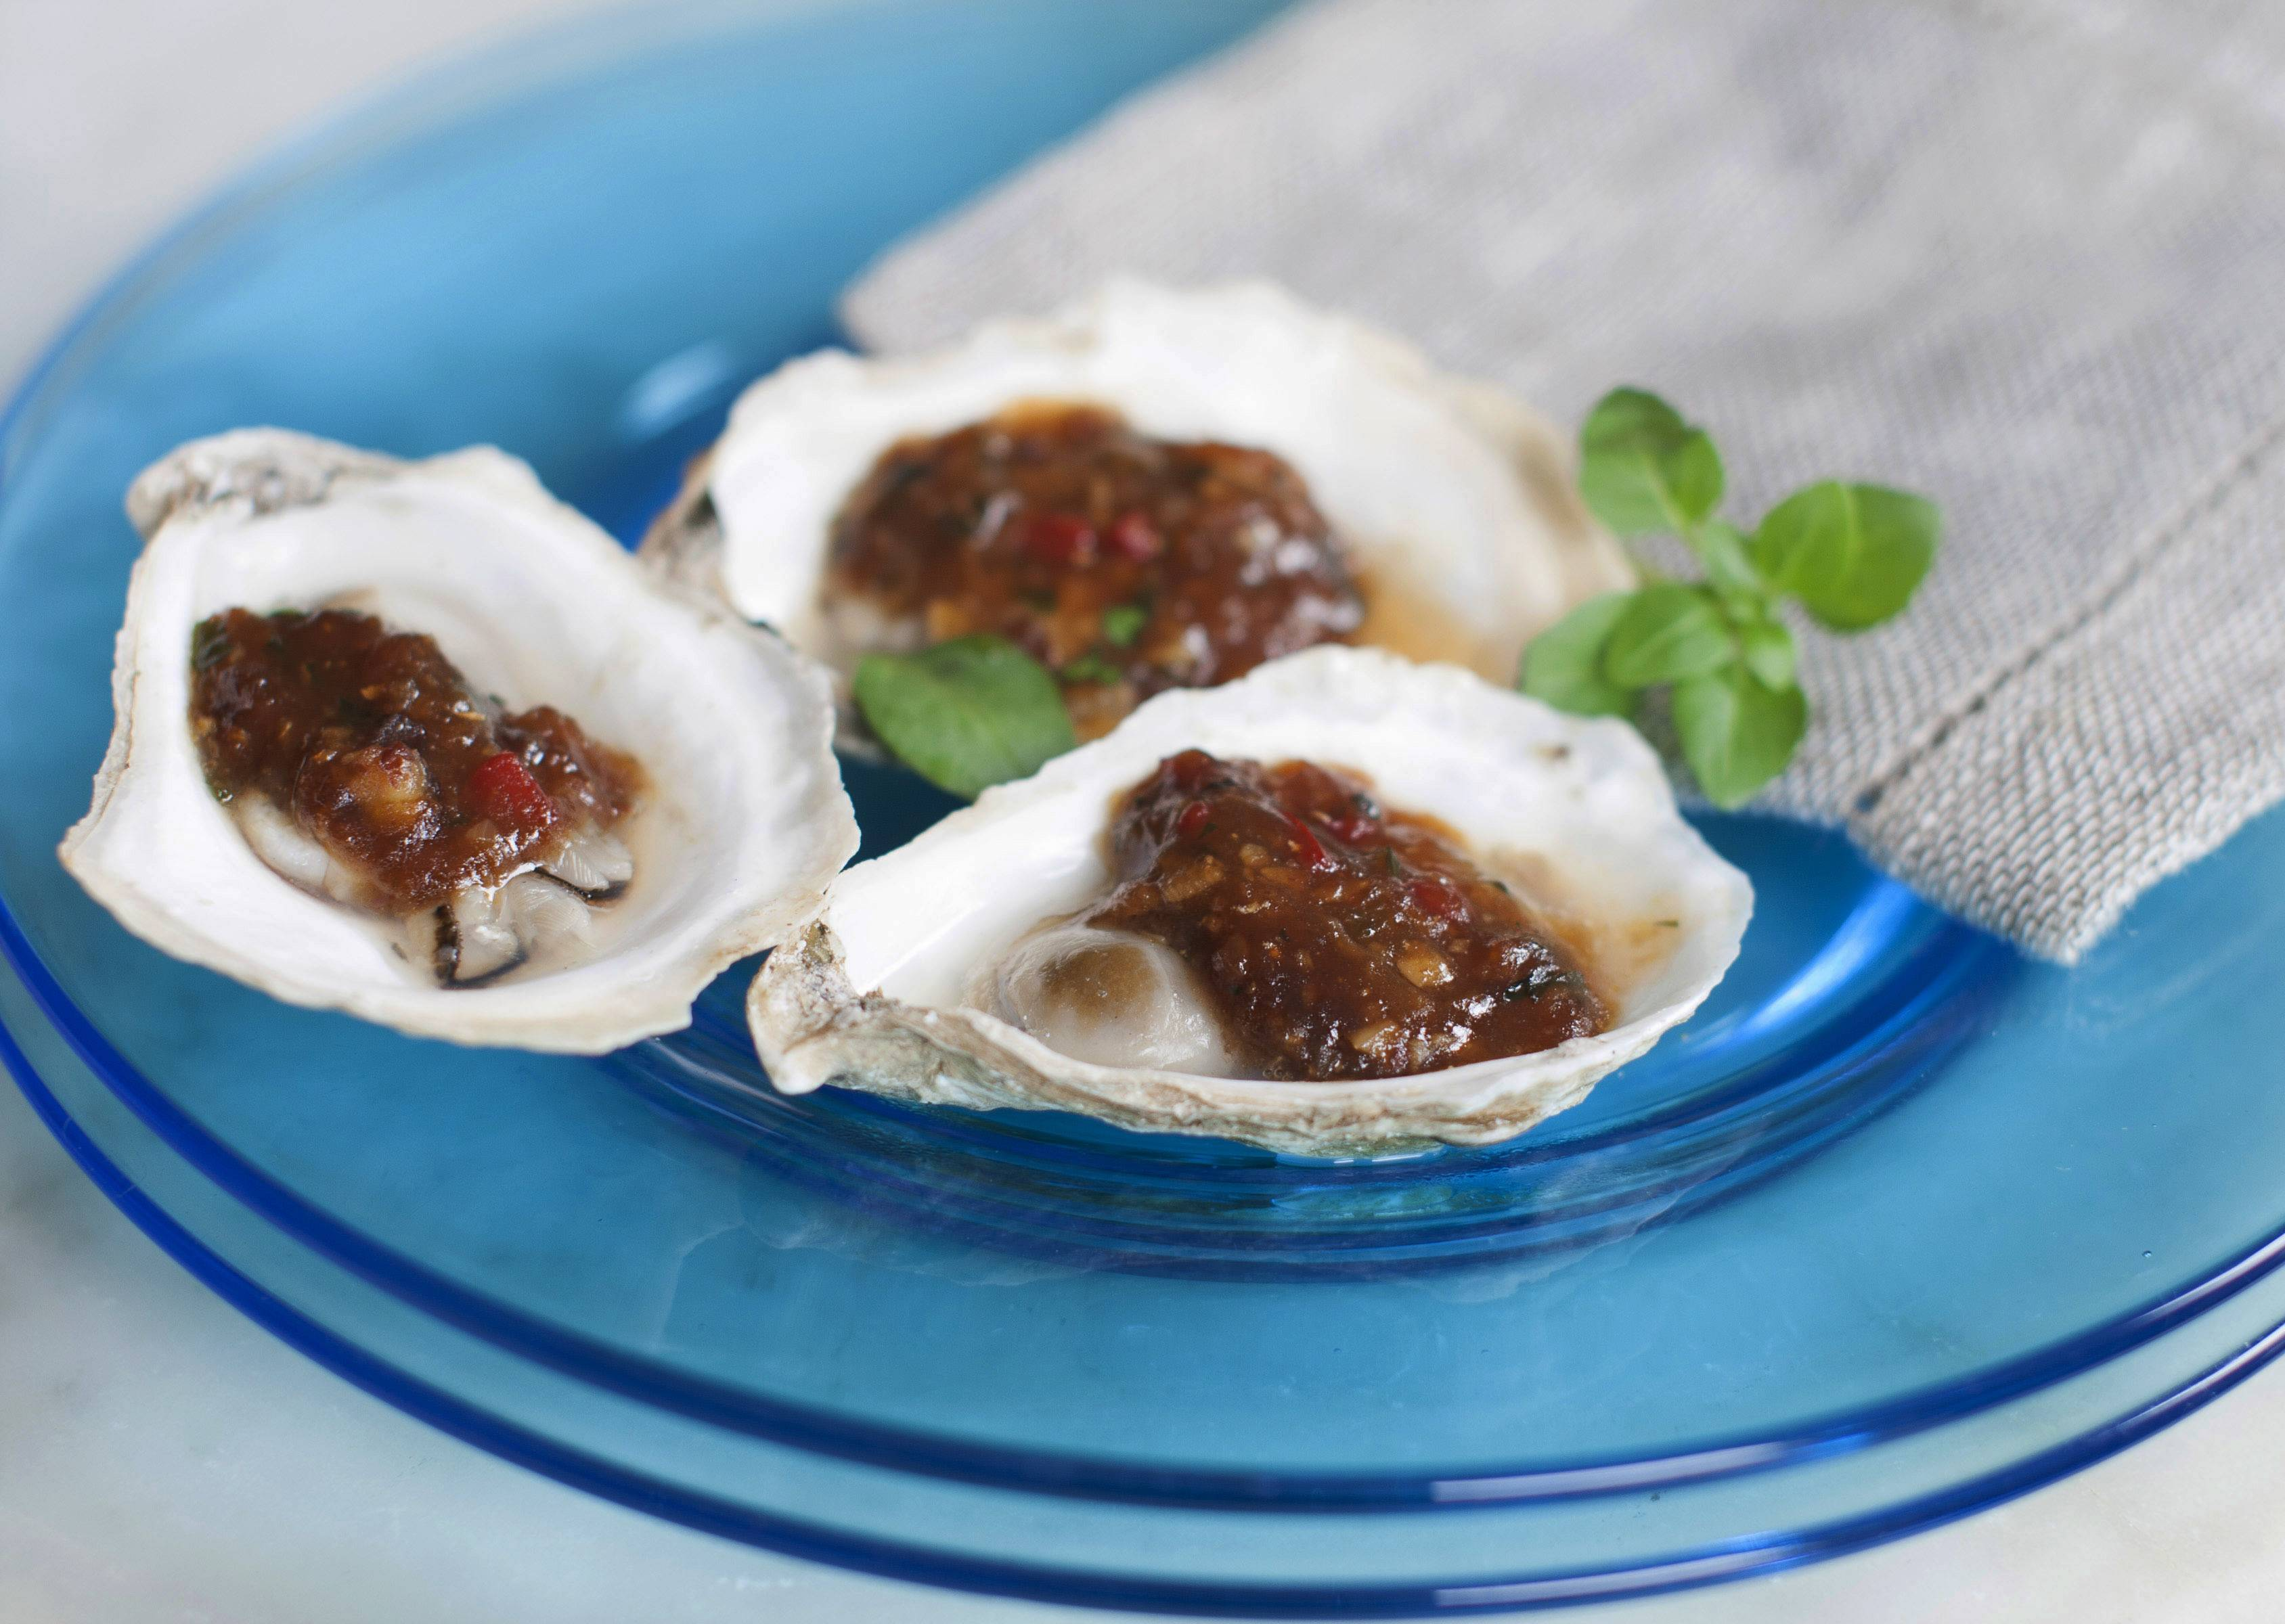 Turn a raw-bar treat into a summertime favorite with a recipe for grilled oysters with fermented black beans and chili garlic inspired by chefs at the South Beach Wine and Food Festival in Miami Beach, Fla.